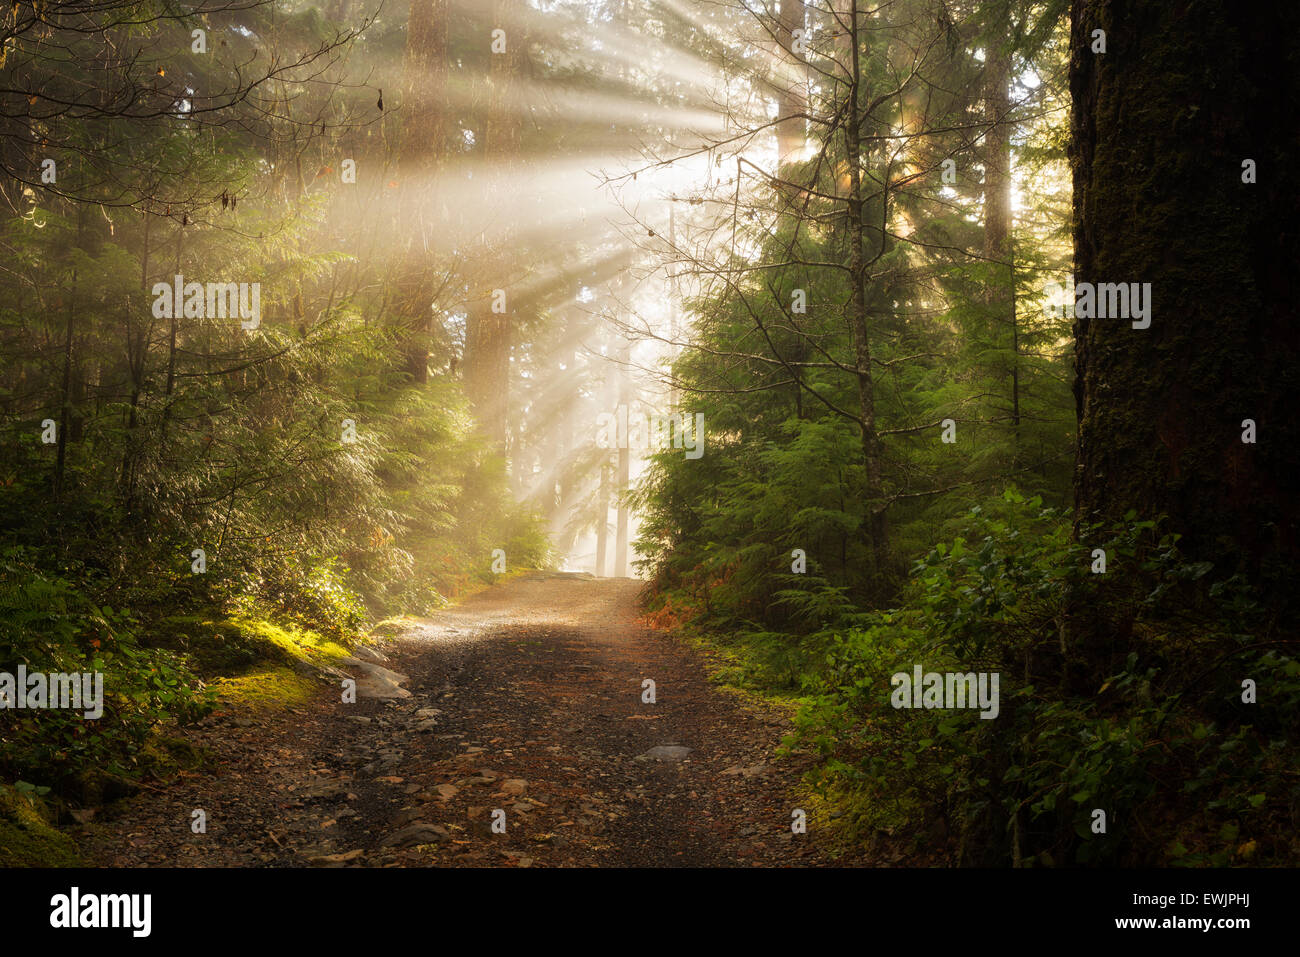 Road/trail along Opal Creek with sunburst/godrays. Opal Creek Wilderness, Oregon - Stock Image